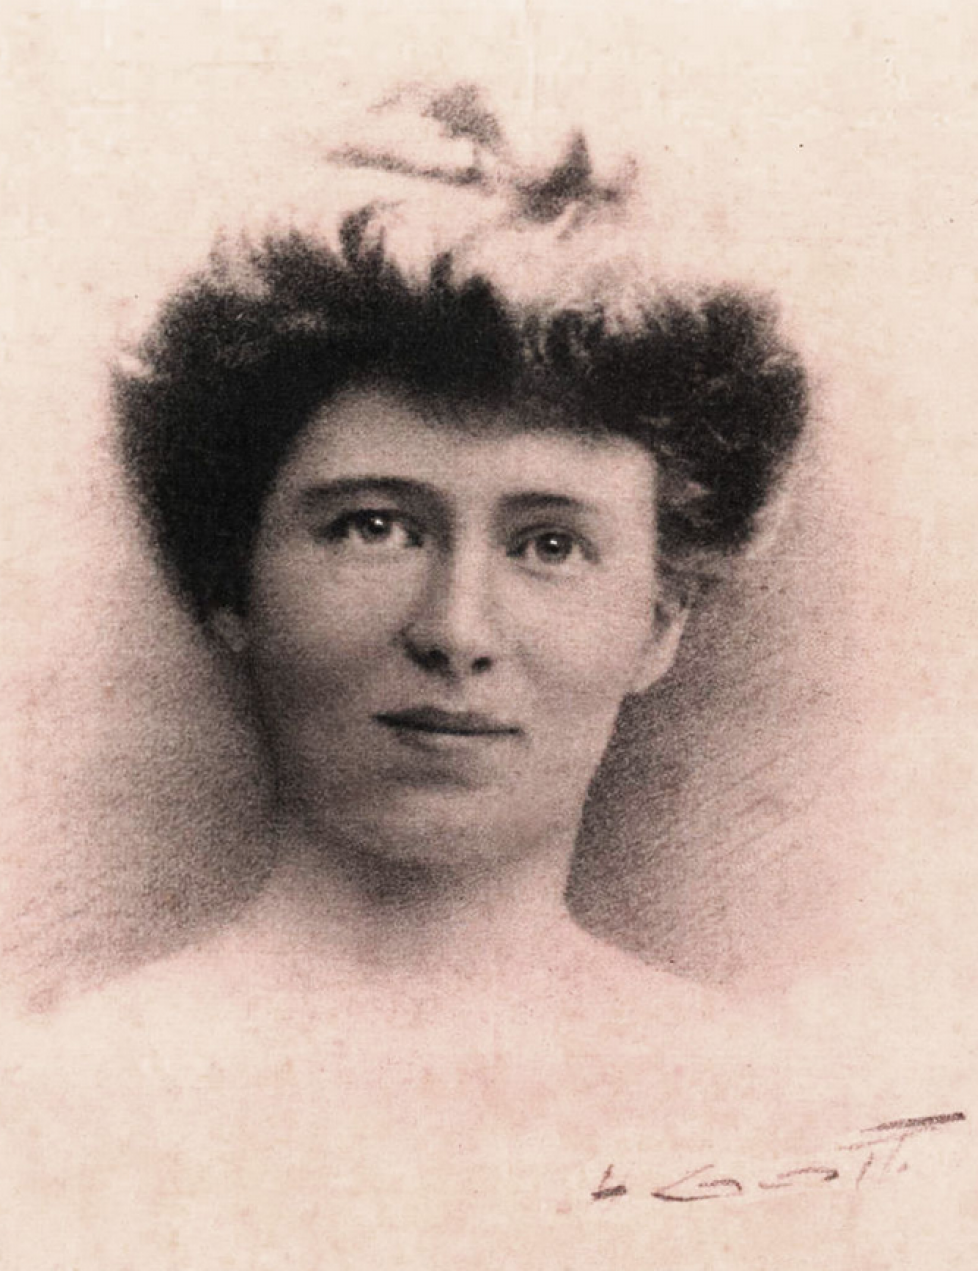 Louise de Bettignies (1880-1918)